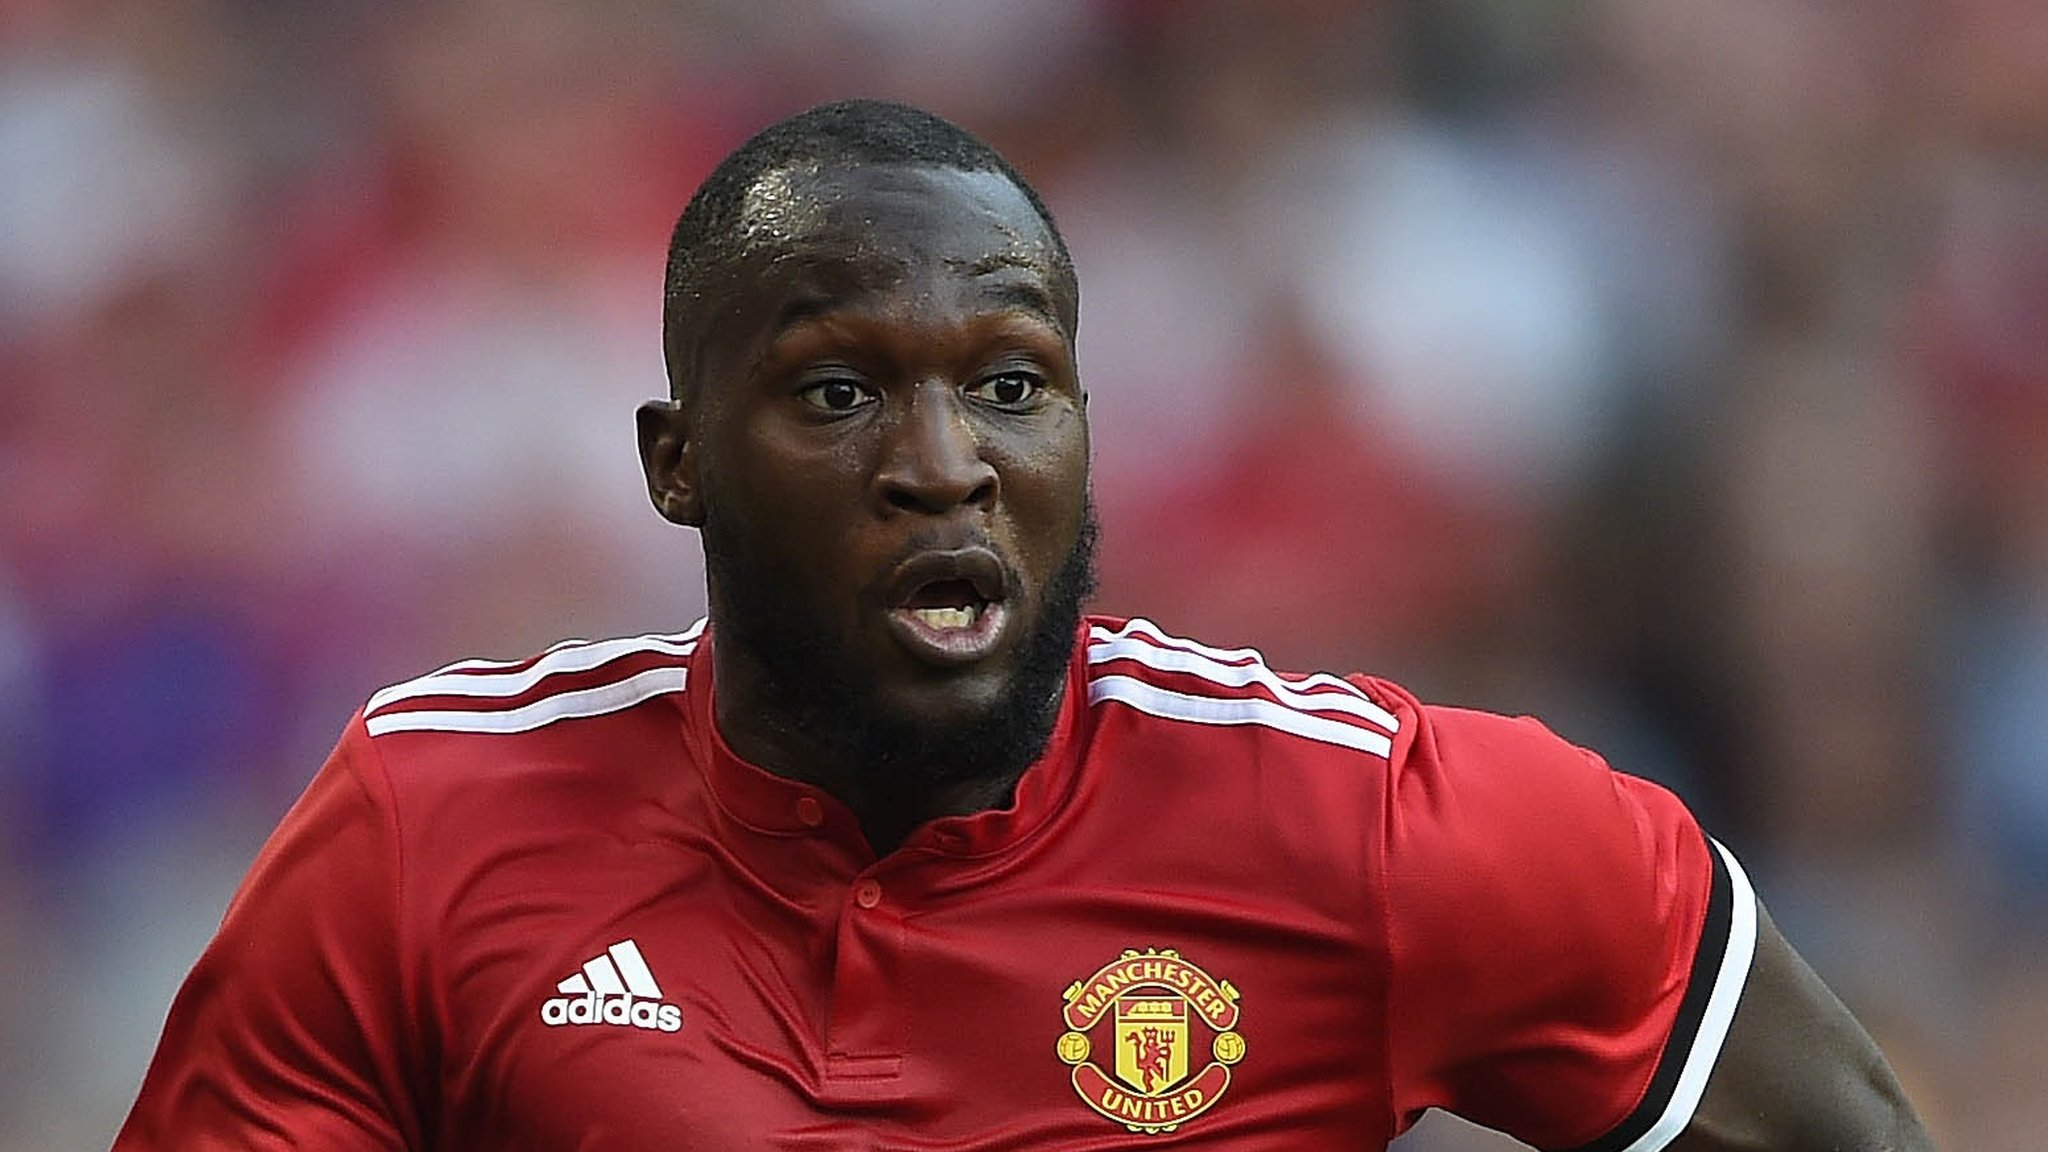 Manchester United: Romelu Lukaku chant is 'racist' - Kick It Out